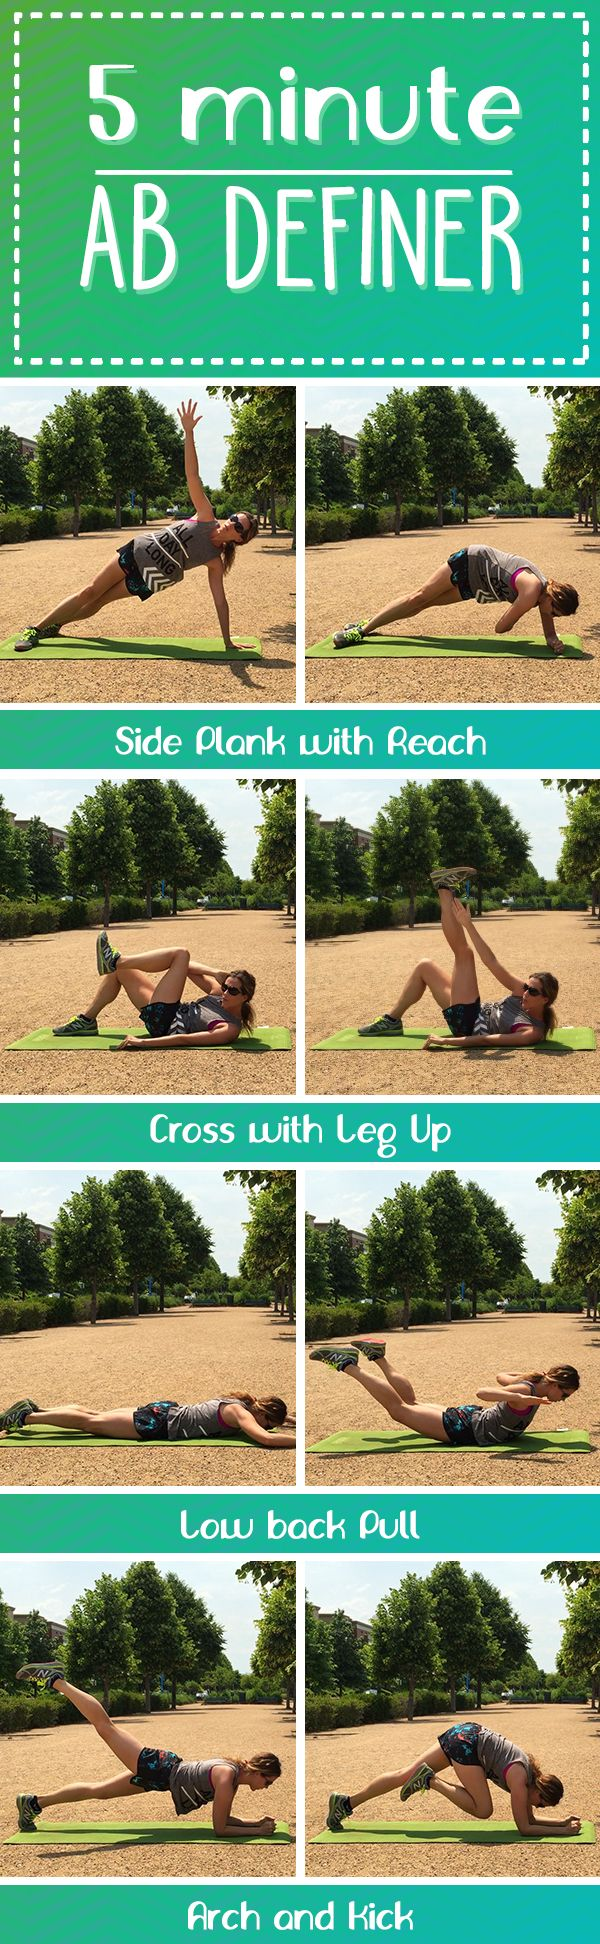 281 best running and fitness images on pinterest fitness tips 5 minute ab definer dynamic moves that work the obliques as part of the 30 ccuart Choice Image